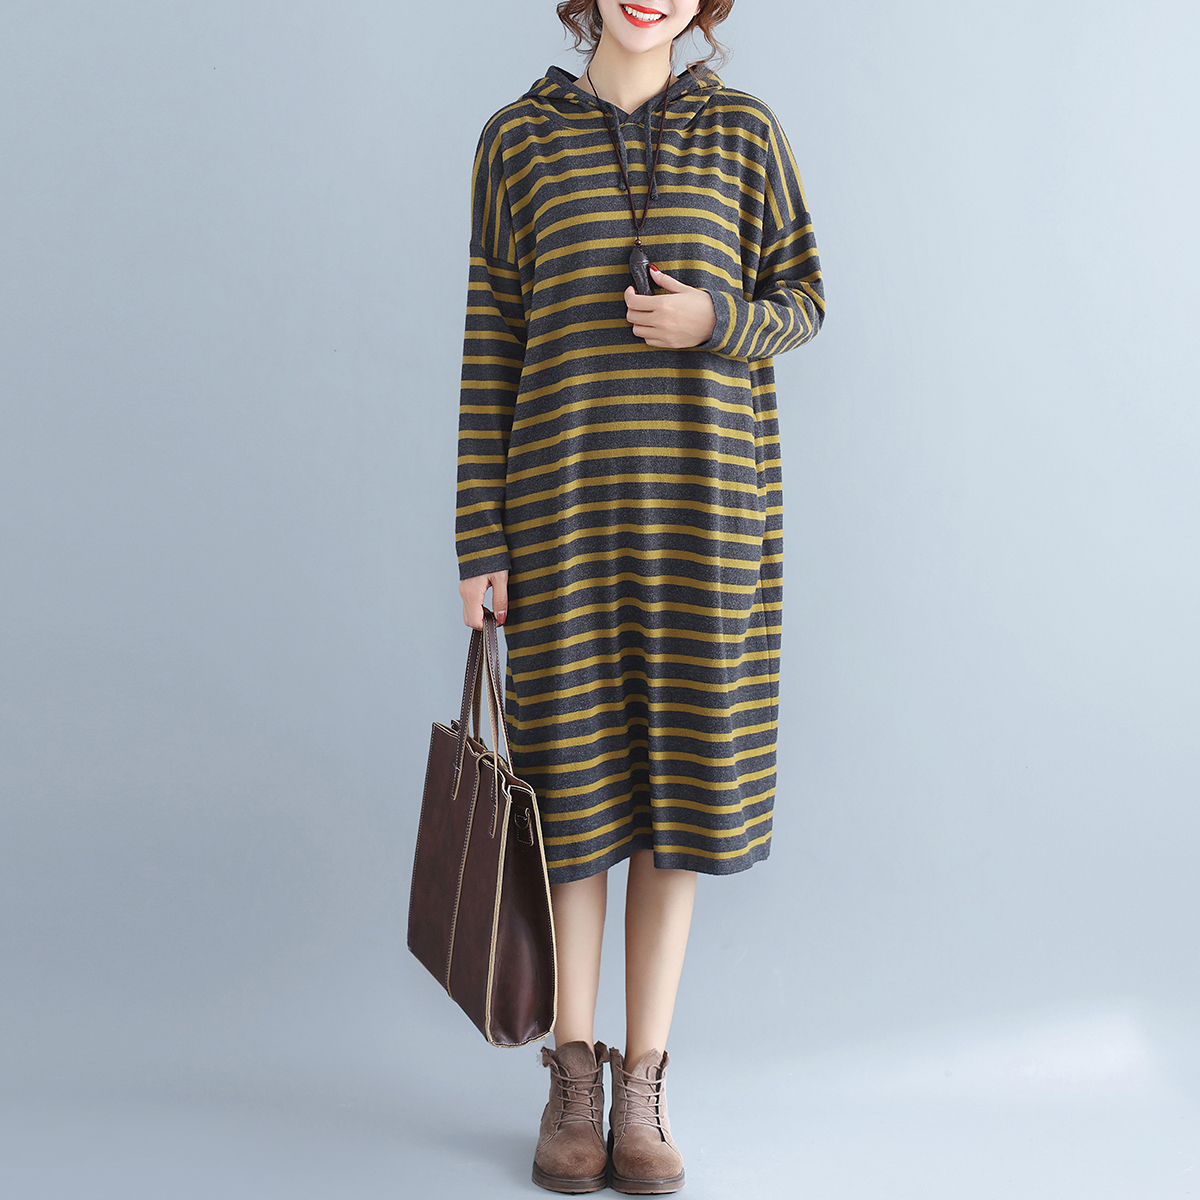 Ladies Oversized Loose Dress New Autumn and Winter Hoodies Knitted Vestidos Clothes Stripe Hooded Dresses Plus SizeÎäåæäà è àêñåññóàðû<br><br>